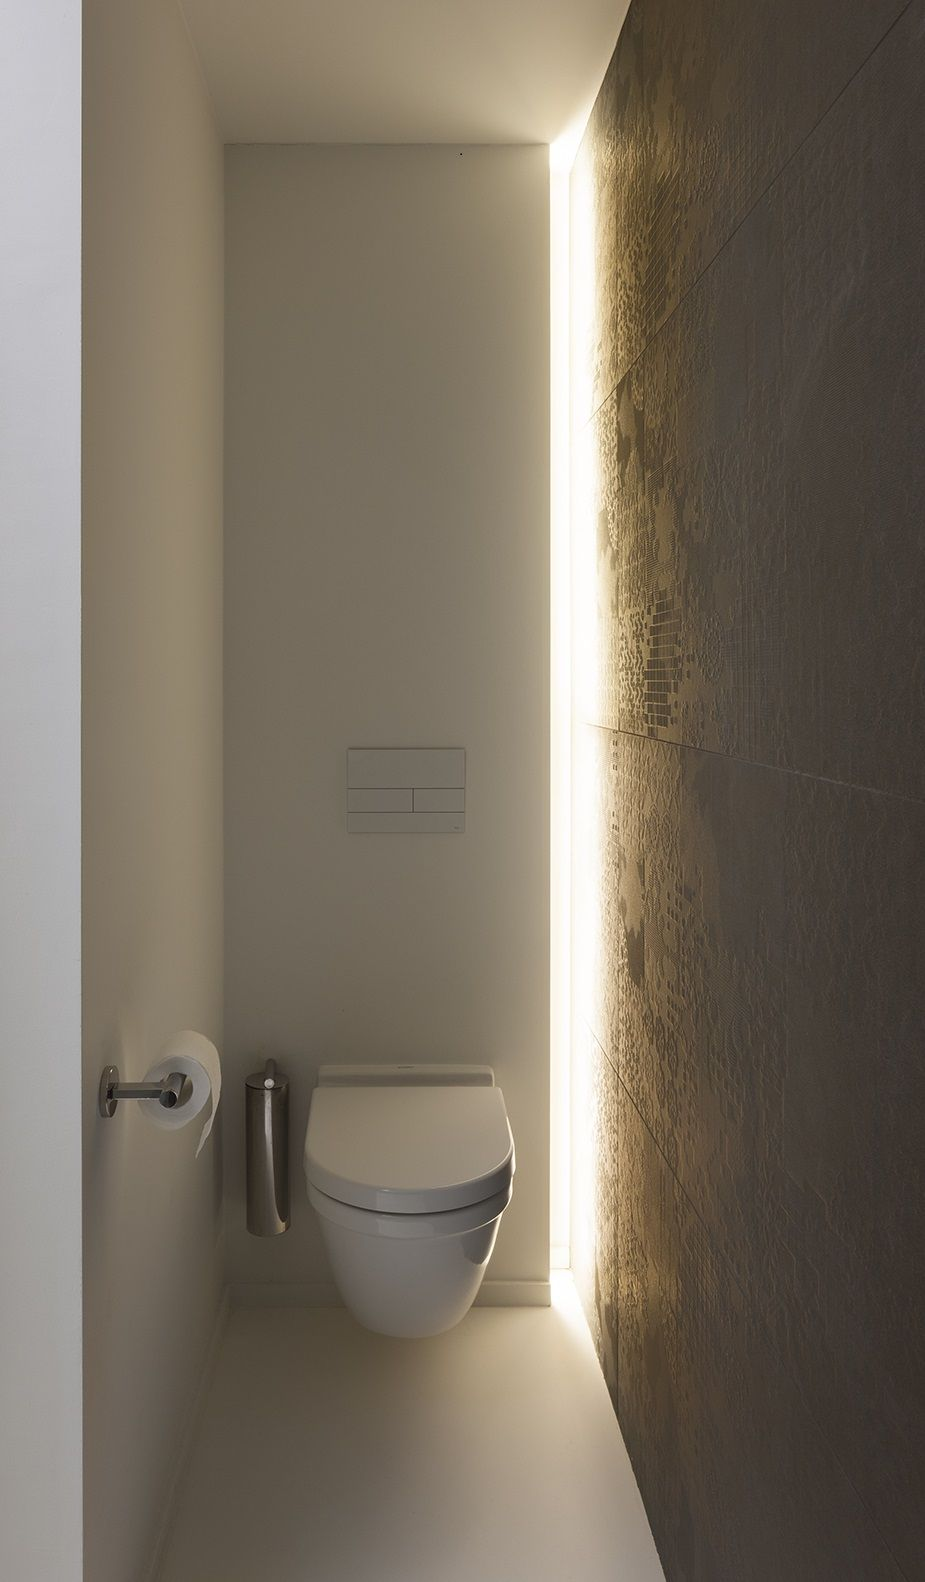 Verlichting In Doucheruimte Indirect Lighting. Design By Architectenburo Anja Vissers